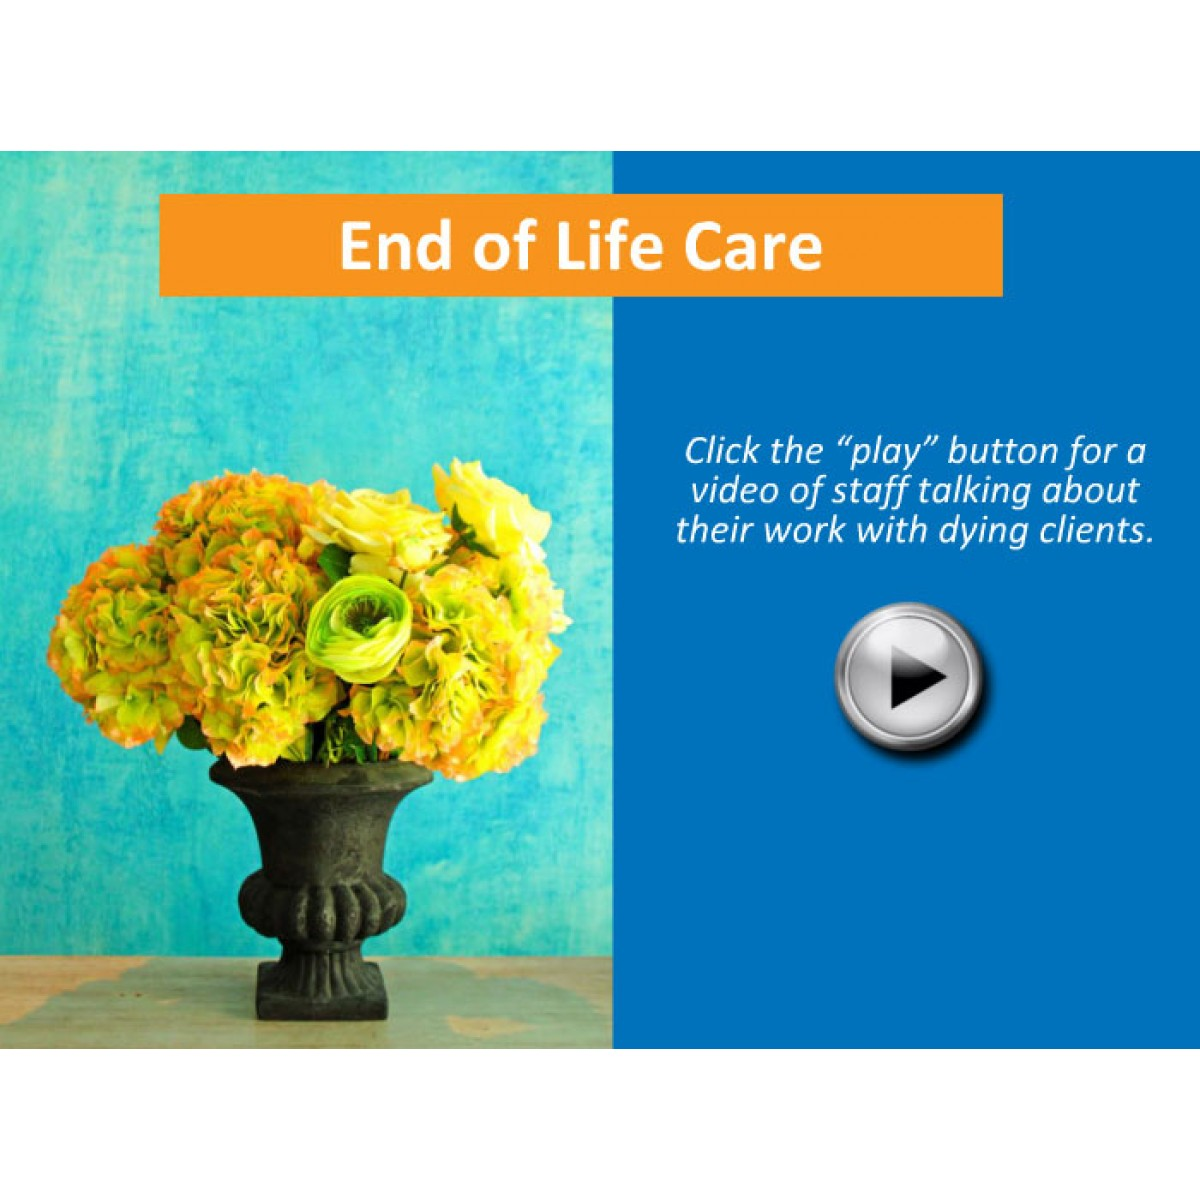 end of life care The first is a living will, which tells doctors want kind of care you want to get at the end of your life the second is called a health care power of attorney, which names your health care agent.